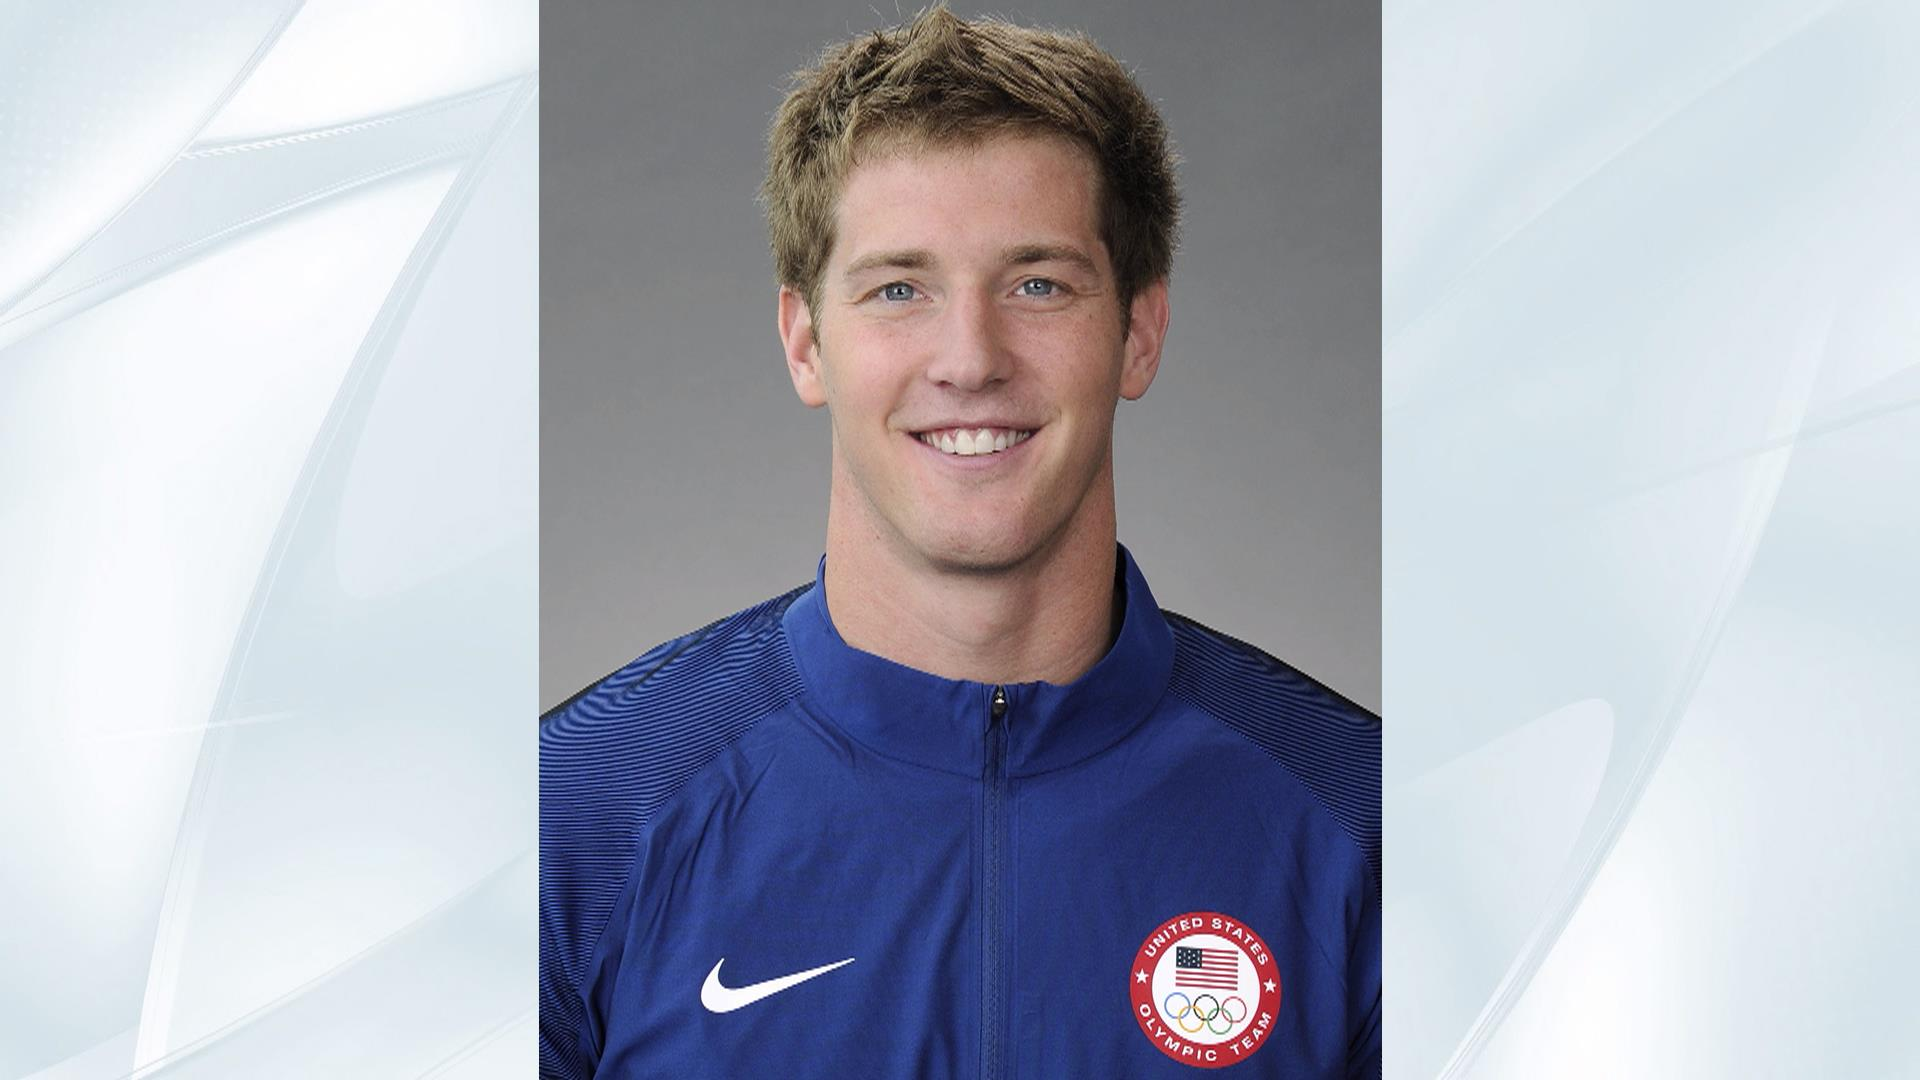 Lochtegate swimmer Jimmy Feigen to donate $11,000 to leave Rio; USOC apologizes